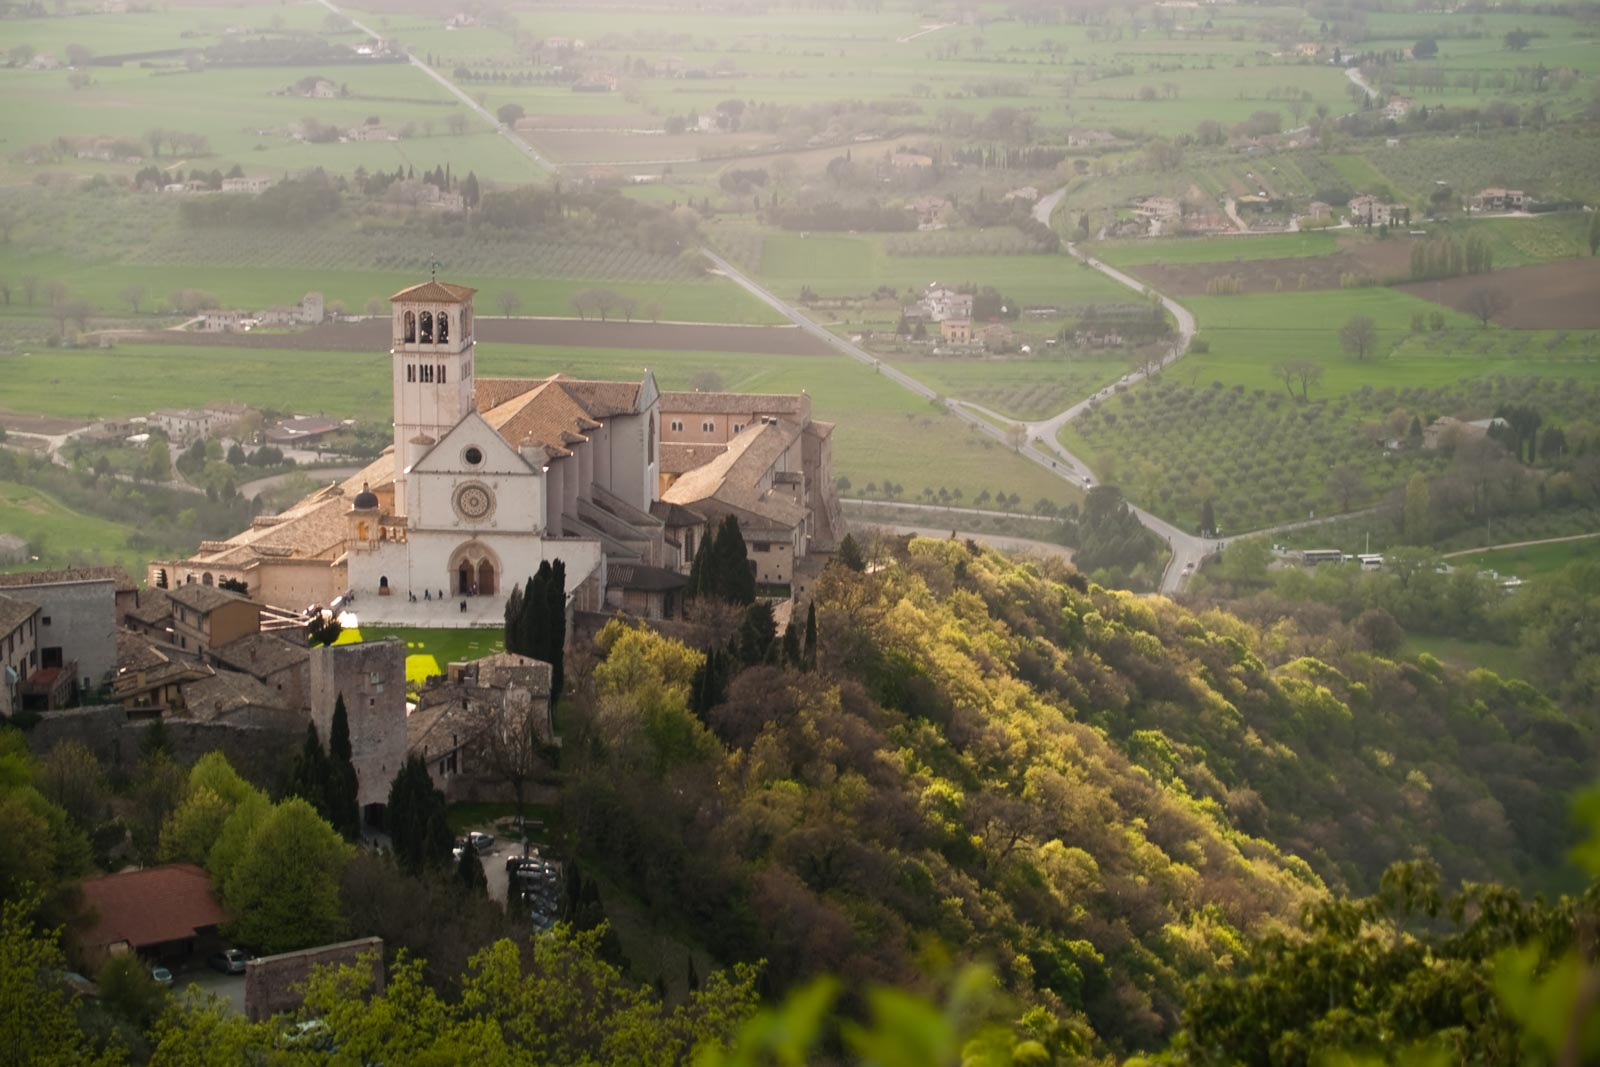 The Cathedral of St. Francis in the beautiful city of Assisi, one of the many cultural delights of Umbria in central Italy. When I asked for a local wine here, they brought a glass of Montefalco Sagrantino. ©Hailey Day/Opening a Bottle